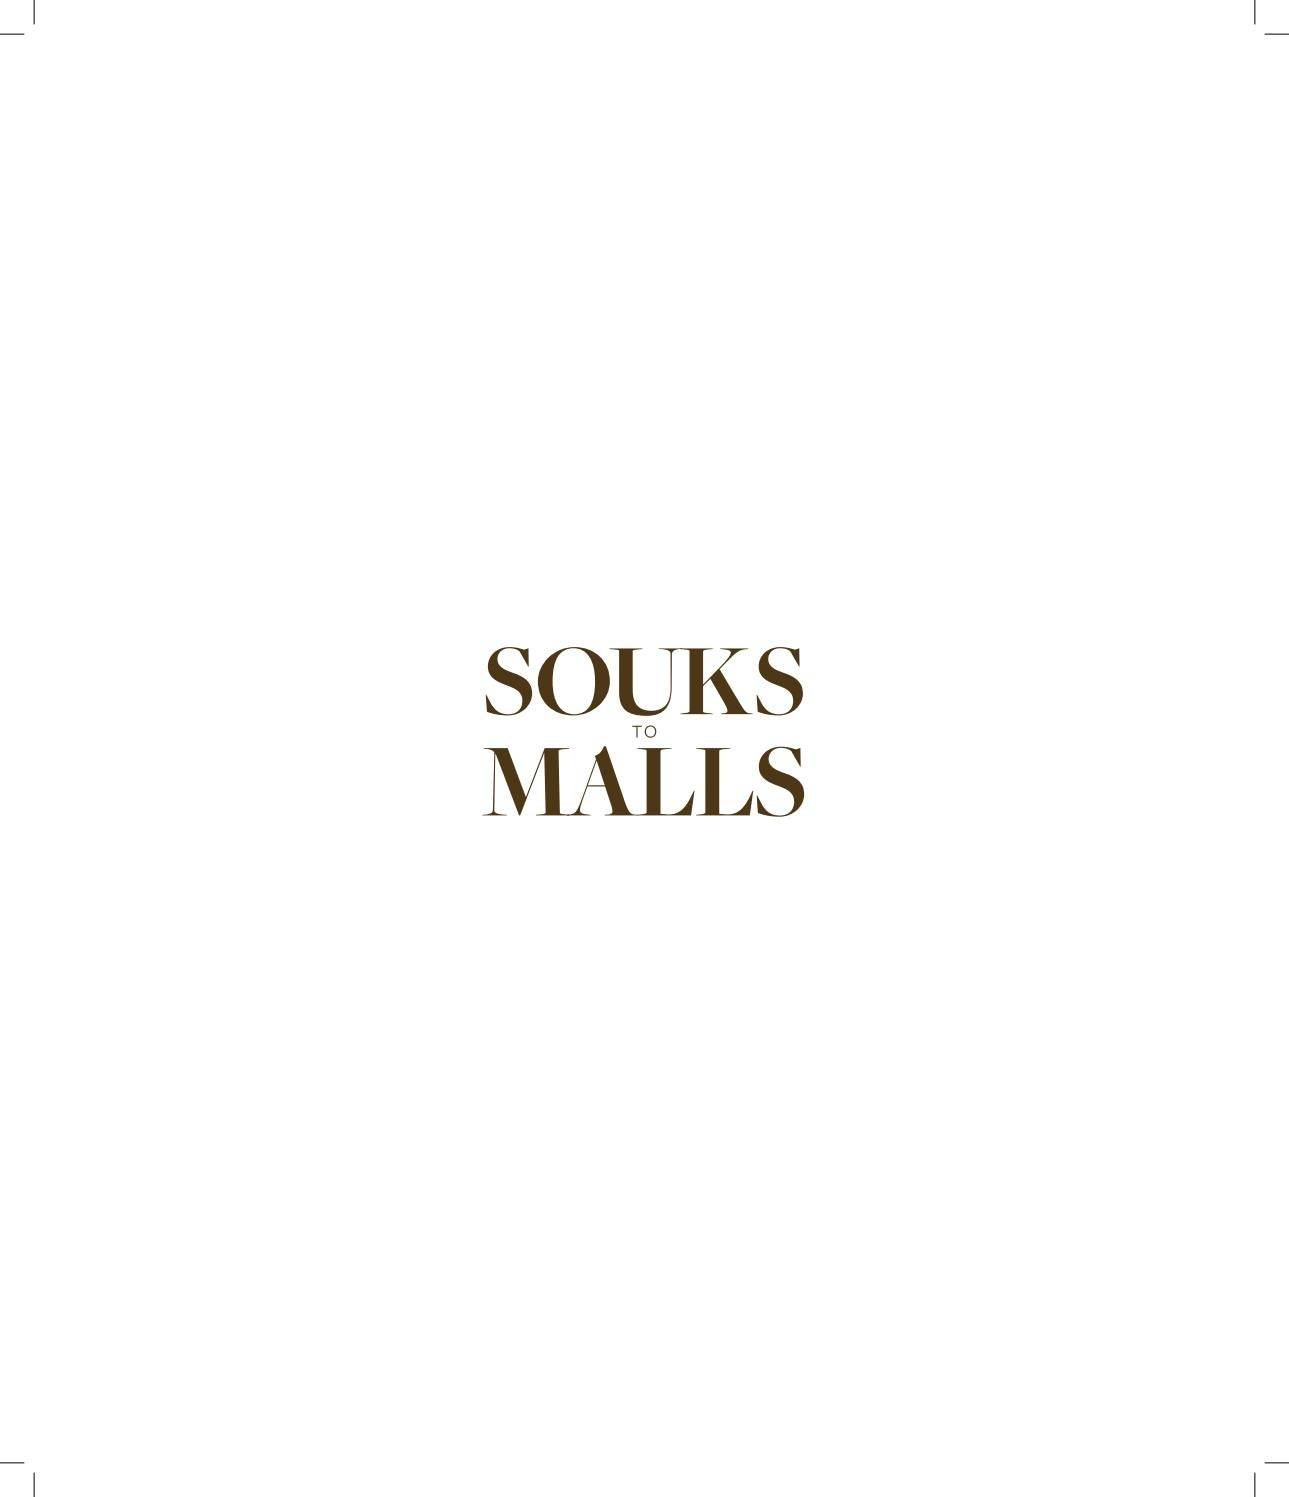 3b2ac1a42 MECSC Souks to Malls Volume 1 by MECSC Connect - issuu